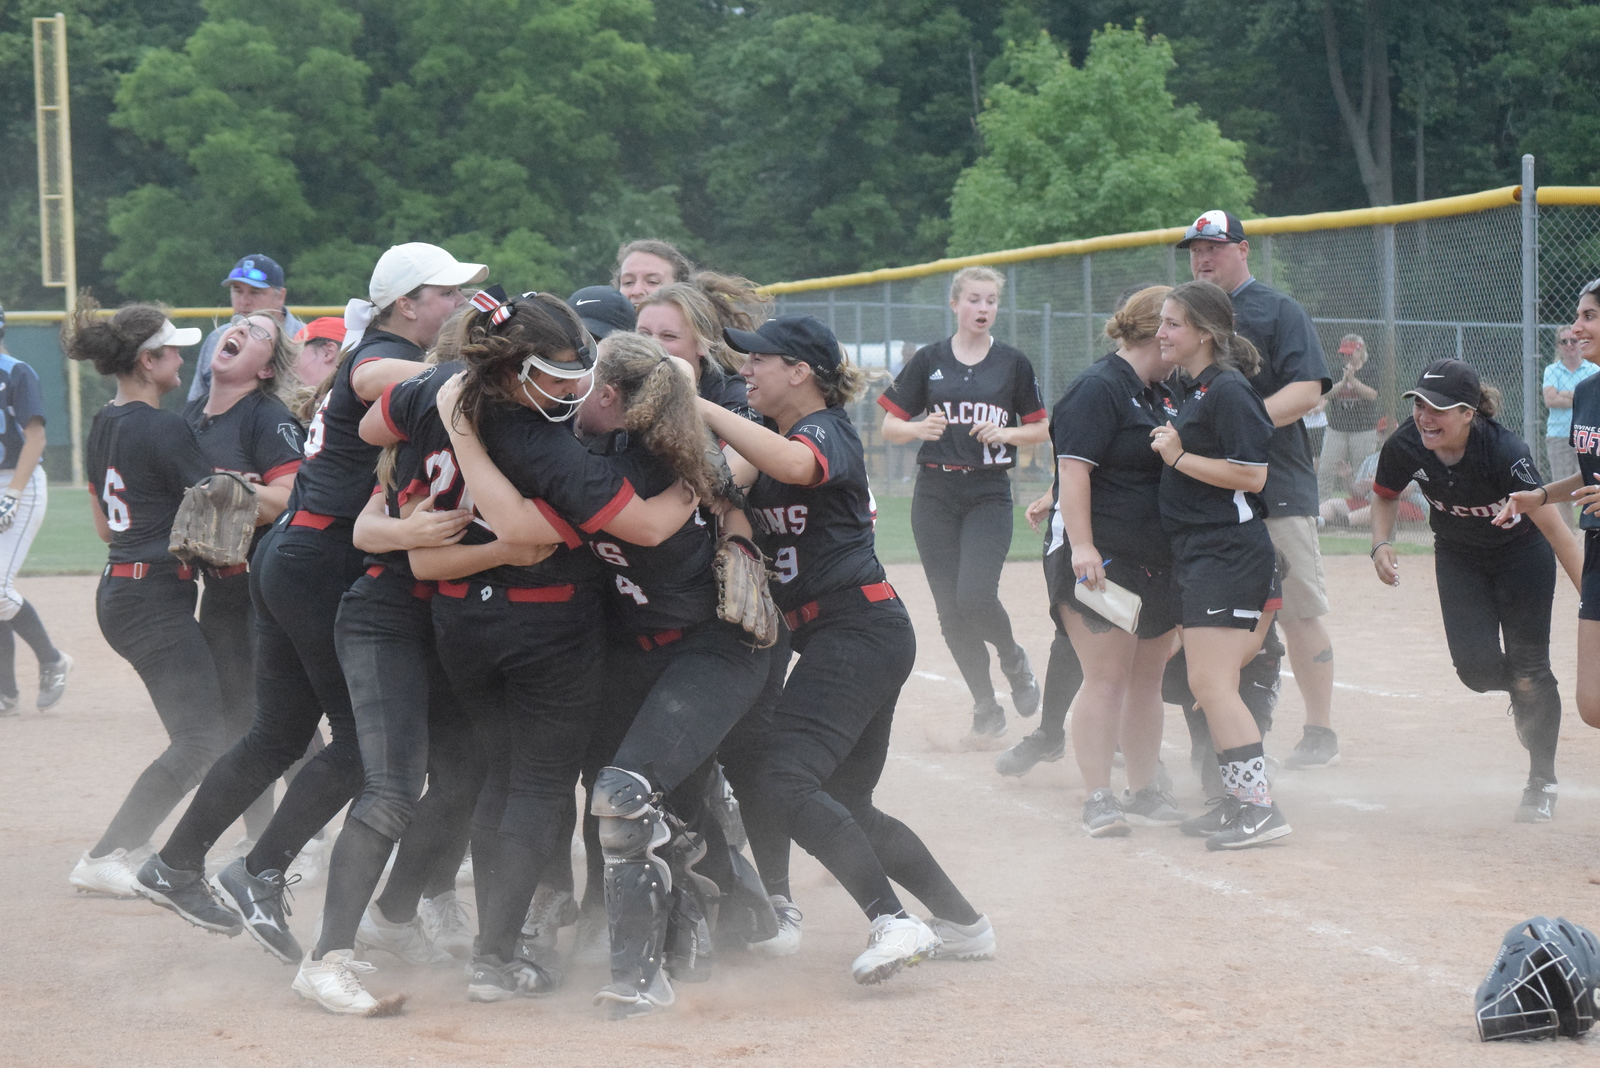 Divine Child scored two runs in the sixth and one in the eighth and defeated Richmond 3-2 in a Division 2 quarterfinal softball game at Novi on Tuesday, June 12. DIGITAL FIRST MEDIA PHOTO GALLERY BY GEORGE POHLY